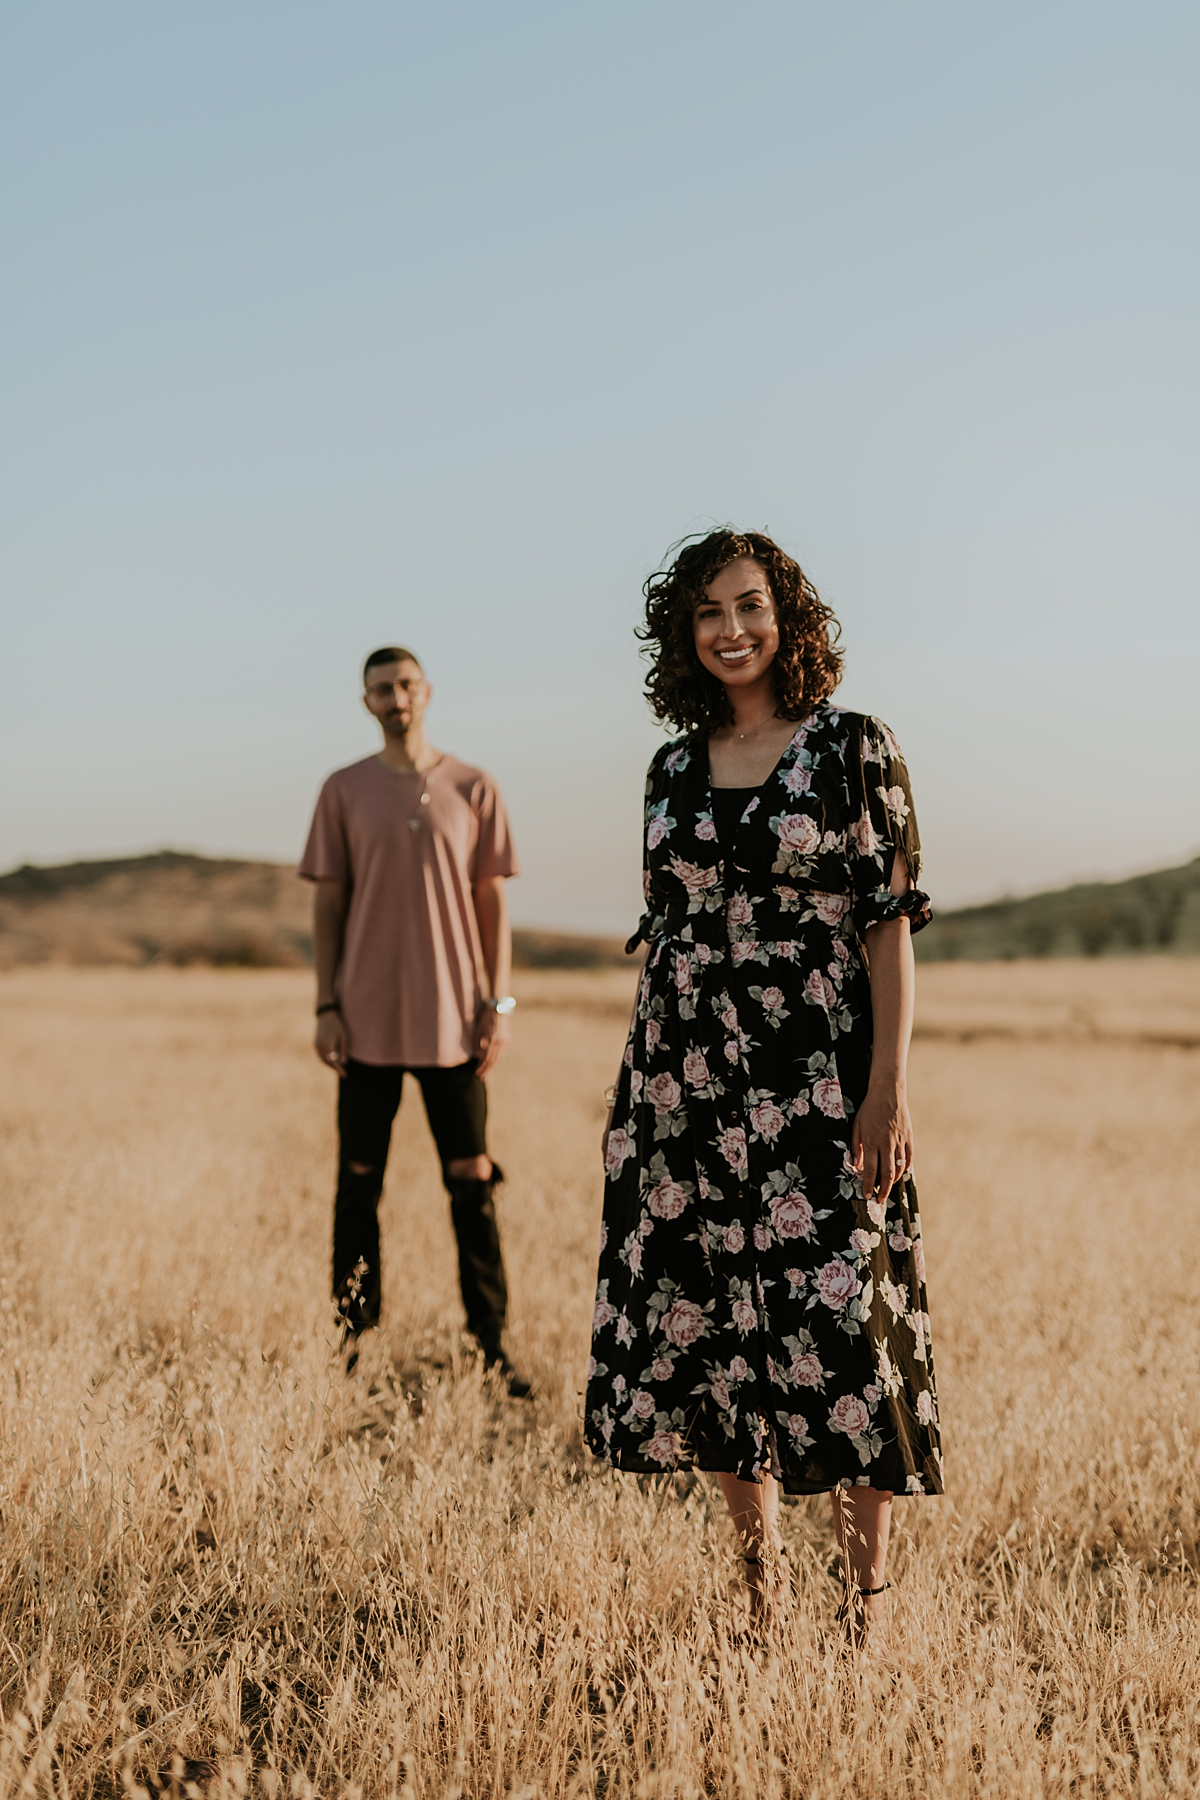 Orange County family photographer. portrait of married standing in the yellow fields at sunset during couple's photo session at Irvine Regional Park